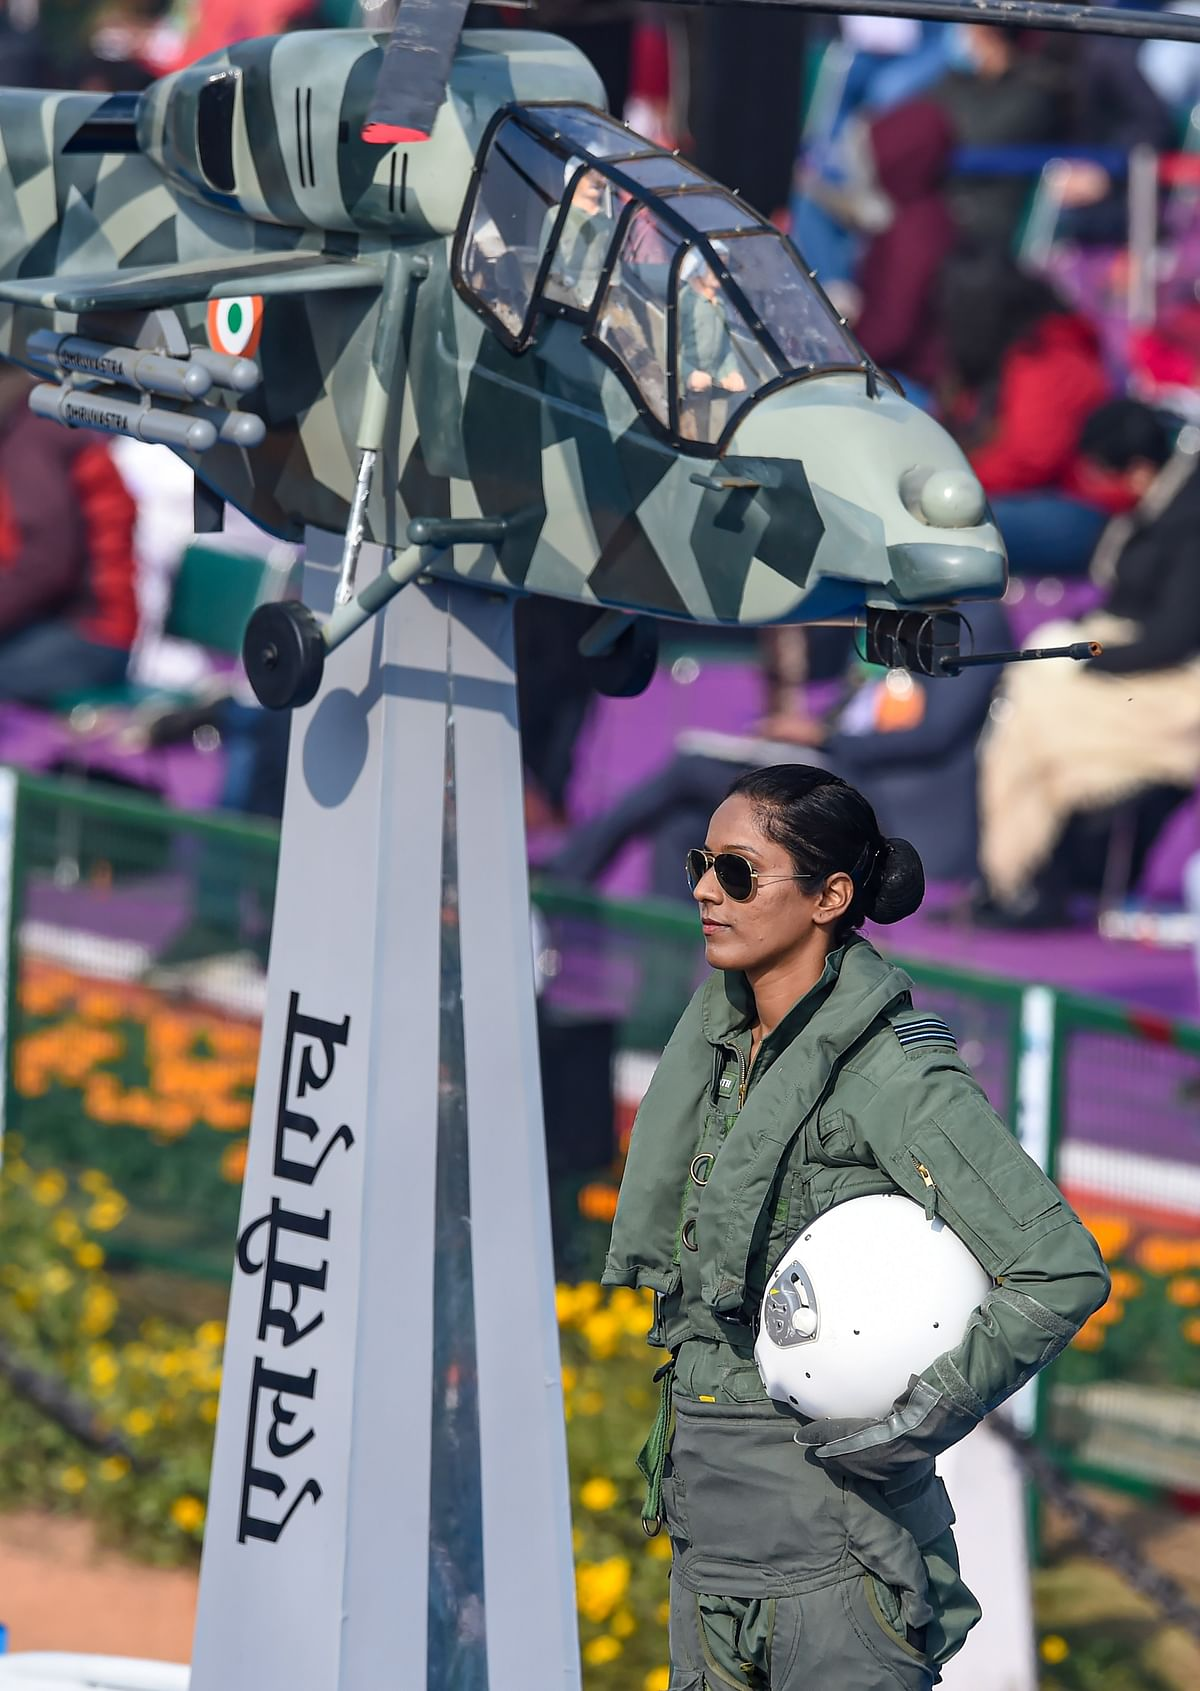 Flight lieutenant Bhawana Kanth stands on the Indian Air Force (IAF) tableau as it moves past Rajpath, during the 72nd Republic Day celebrations in New Delhi, Tuesday, 26 January 2021. Kanth became the first woman fighter pilot to take part in the January 26 ceremonial event.